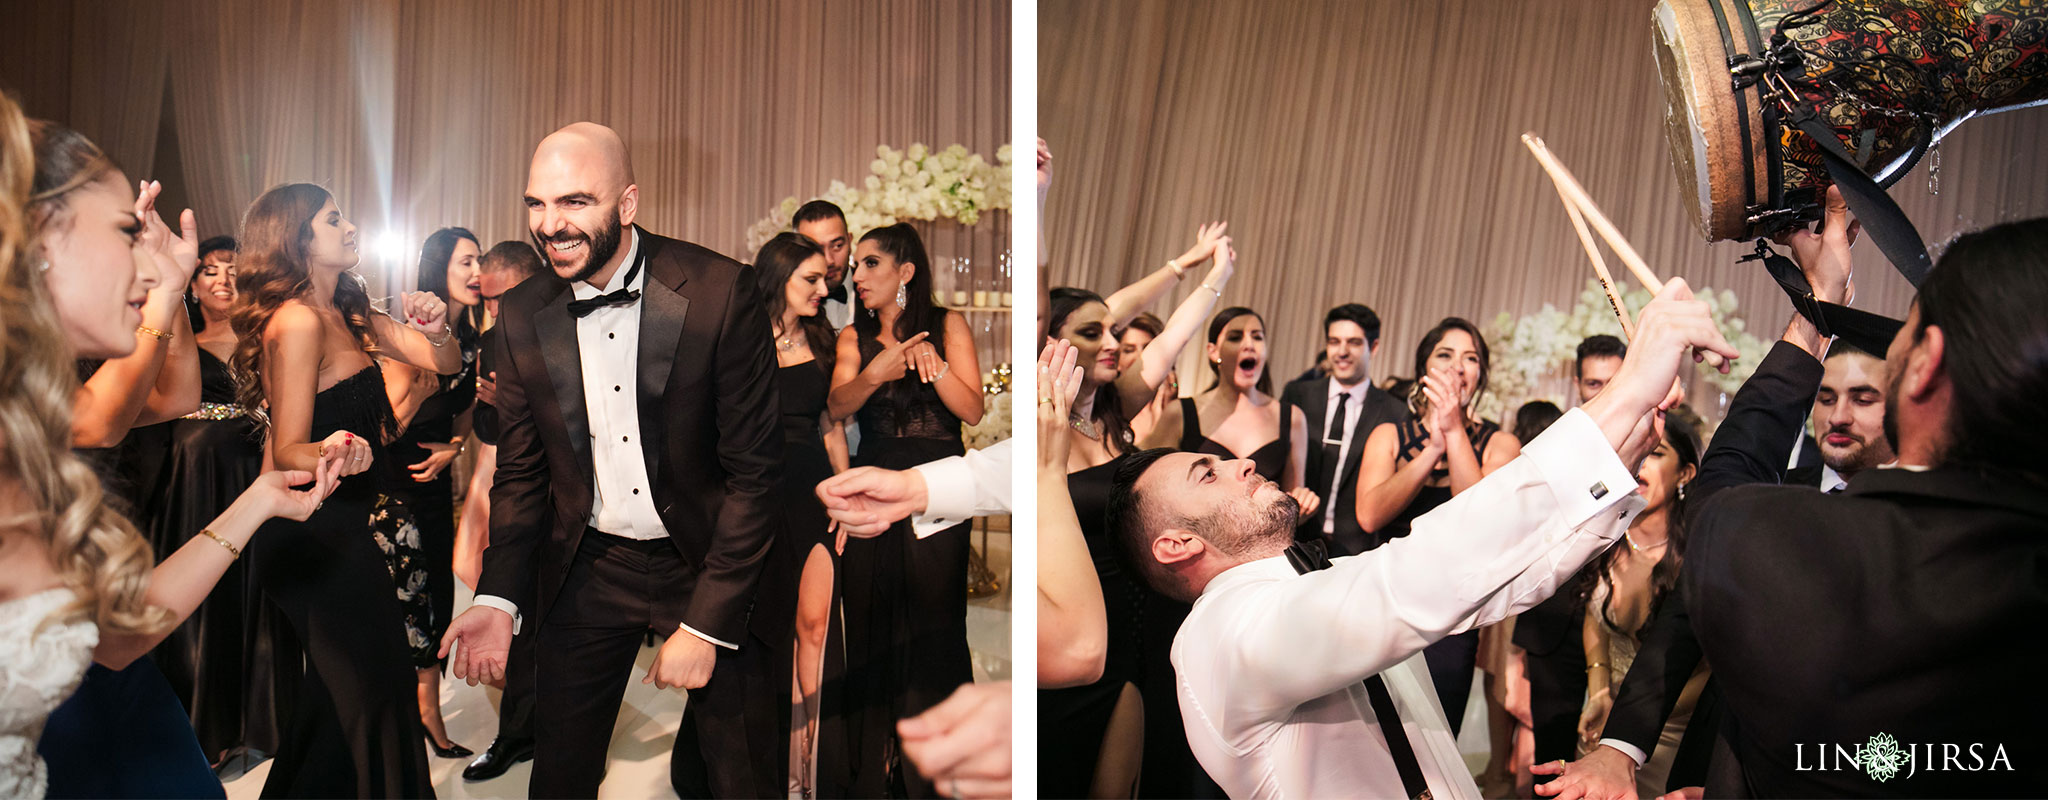 46 montage beverly hills persian wedding photography